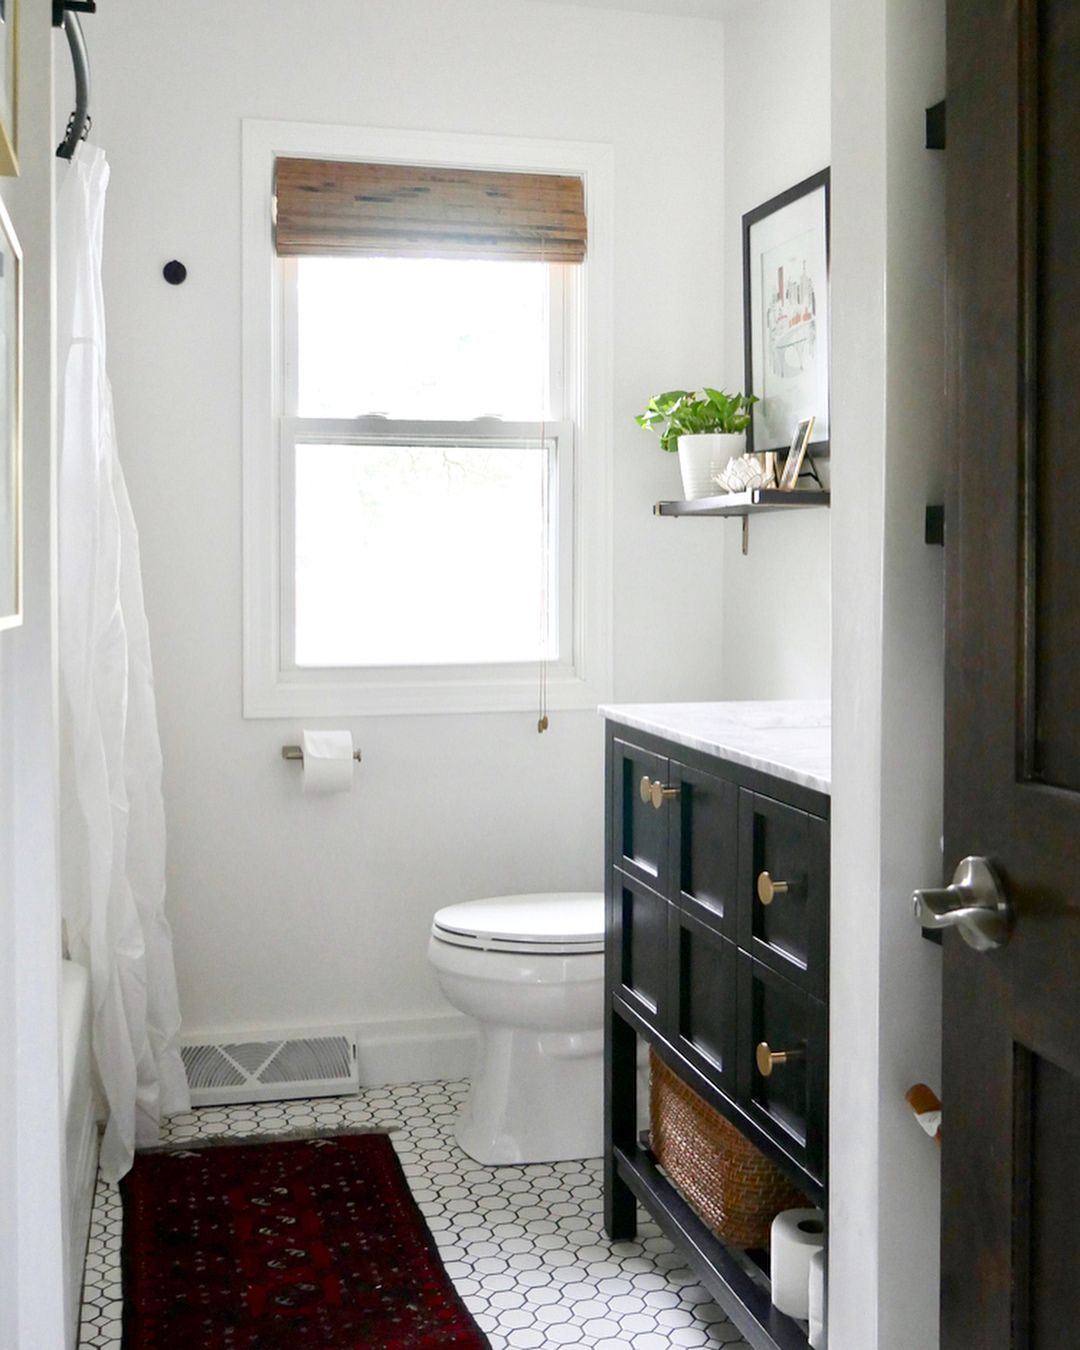 Layout Vanity Sink Closest To The Door Toilet Next To It On Same Wall And Tub On Opposite Small Bathroom Renovation Small Bathroom Remodel Bathrooms Remodel